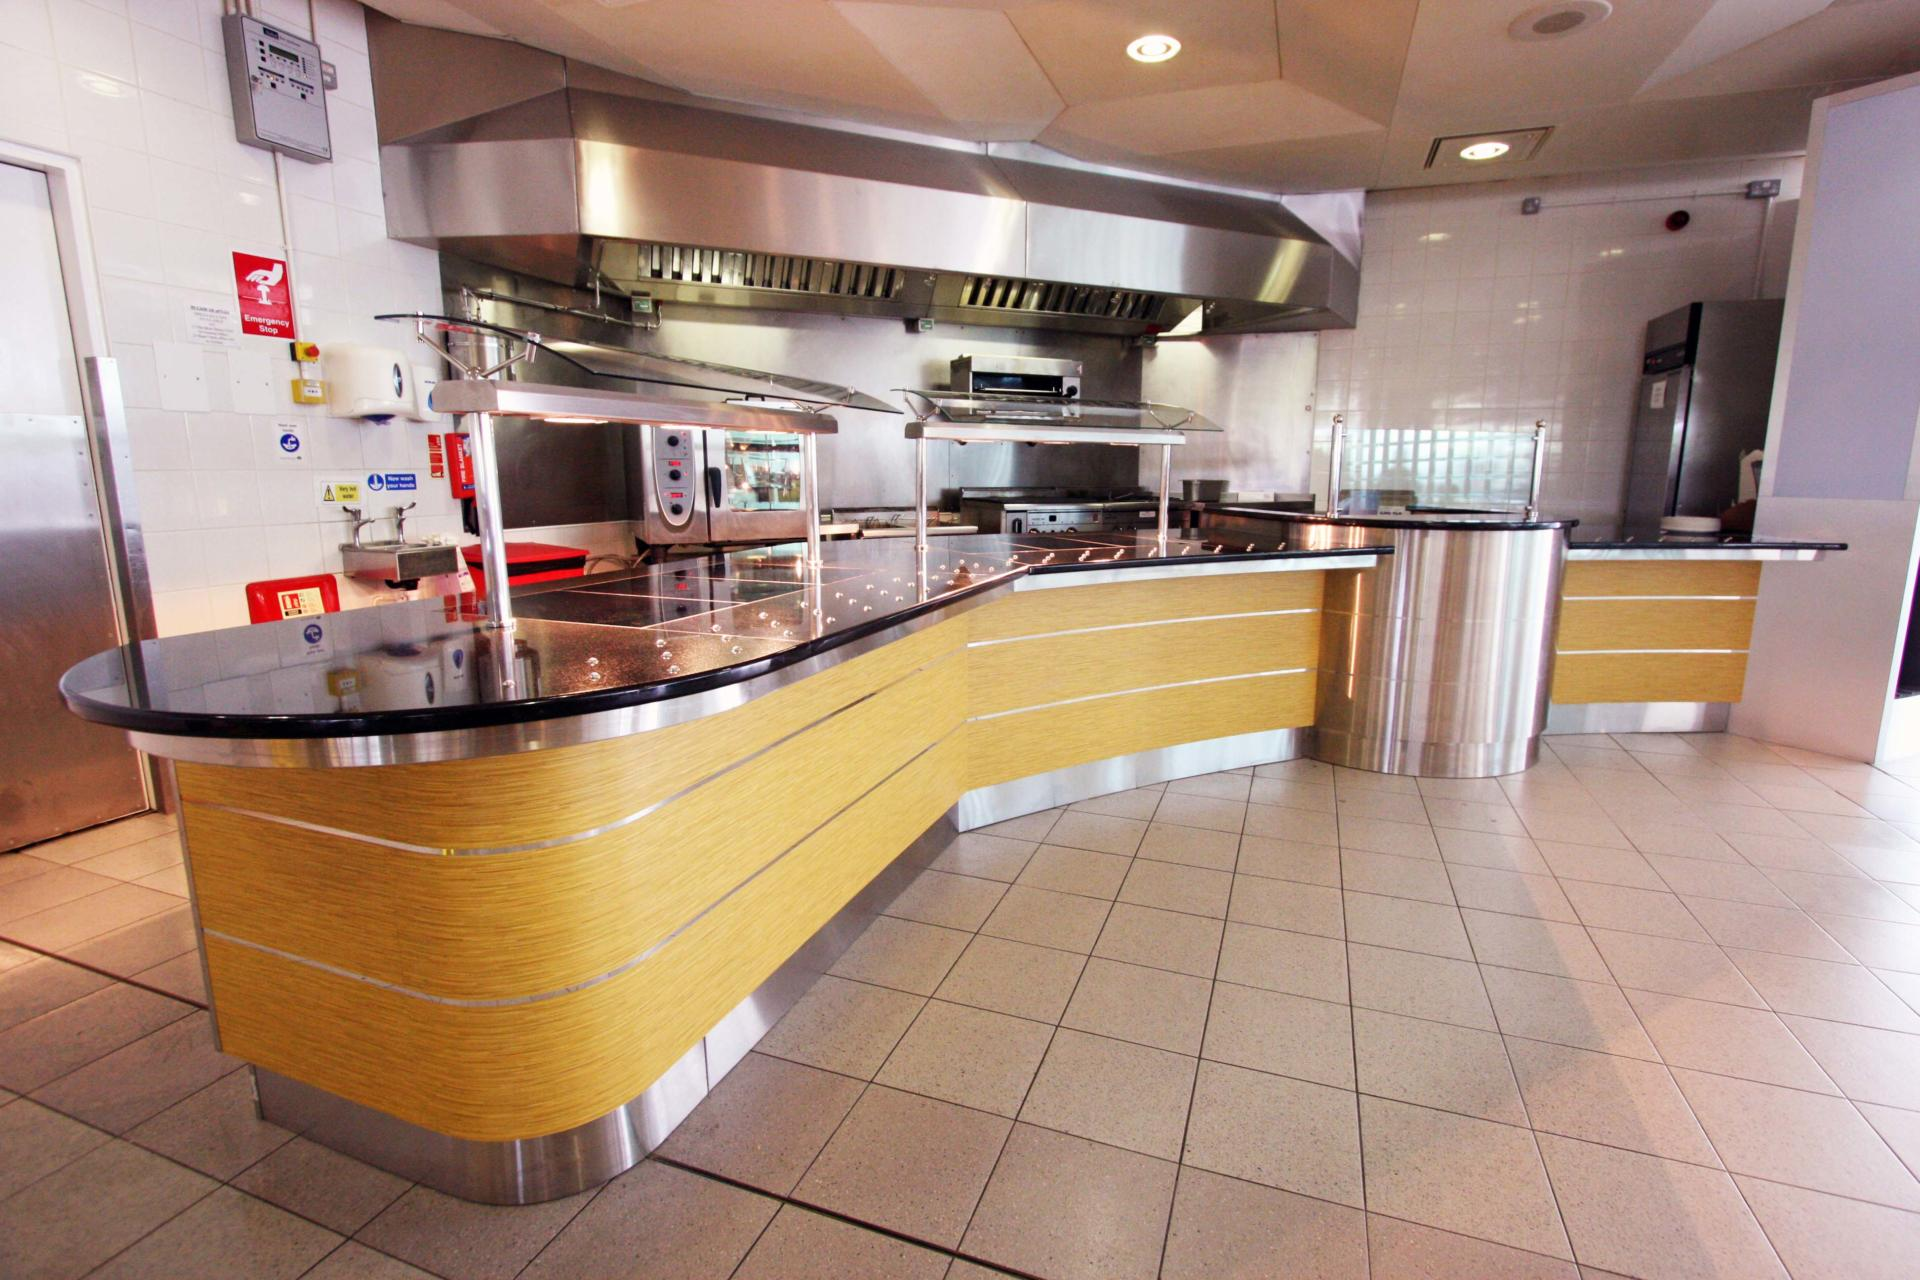 nationwide_swindon_staff restaurant_servery (8)